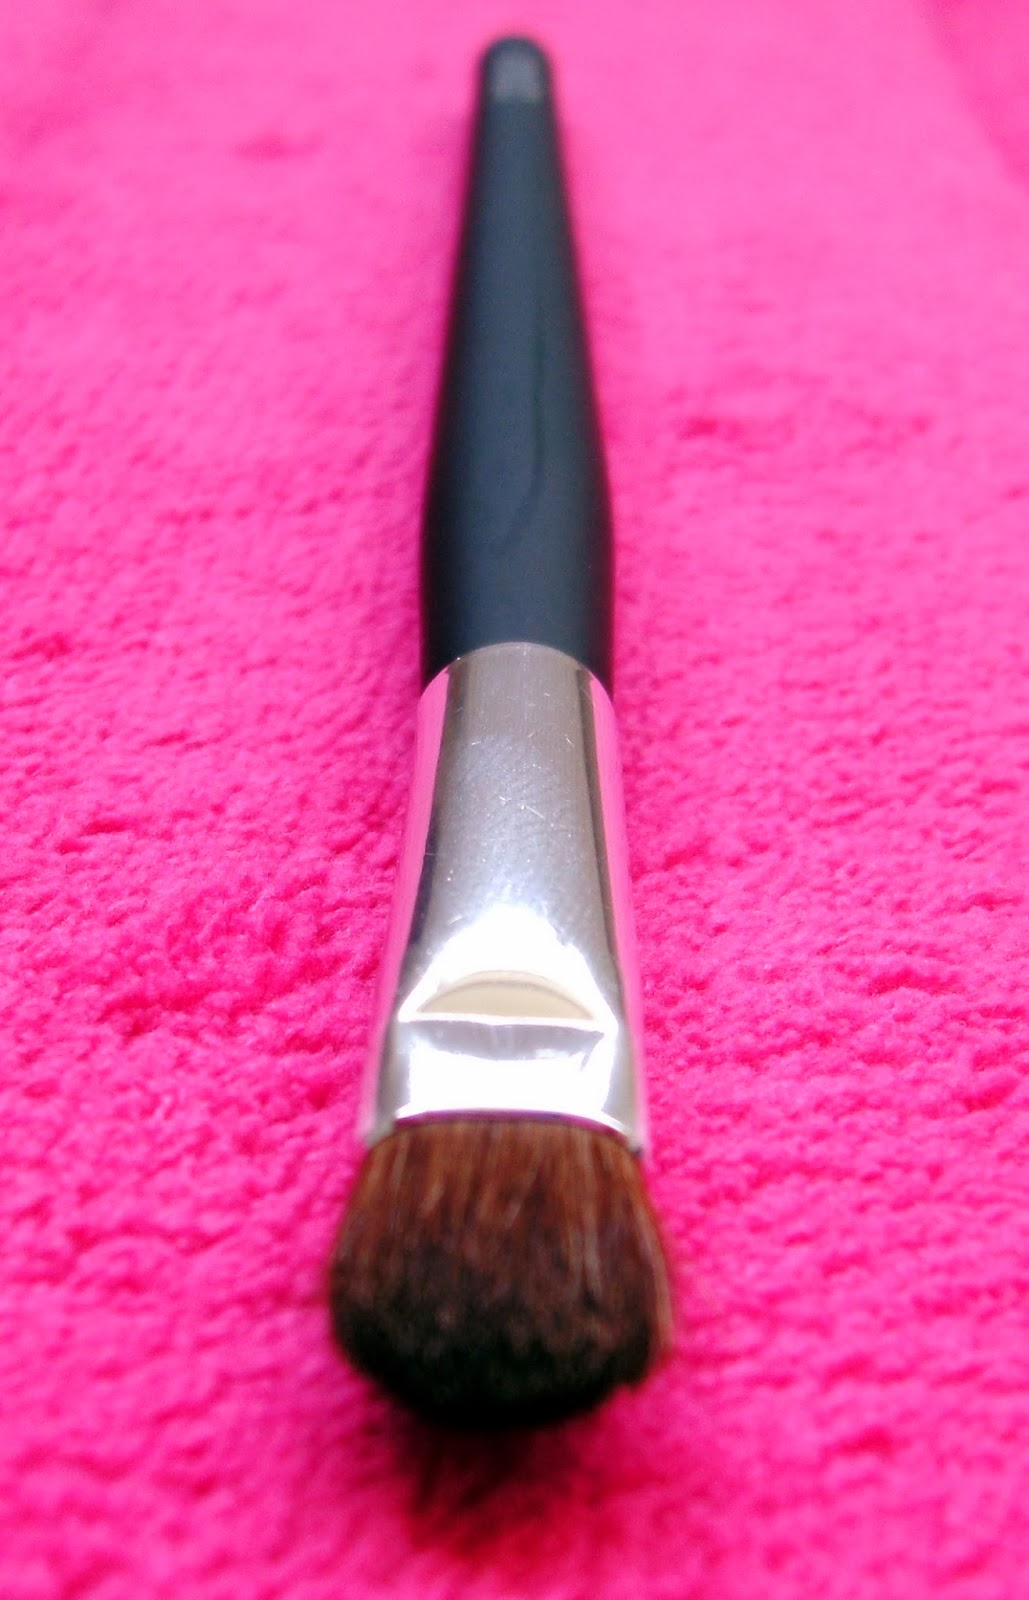 Bargain Barbara Daly Eyeshadow Makeup Brush from Tesco